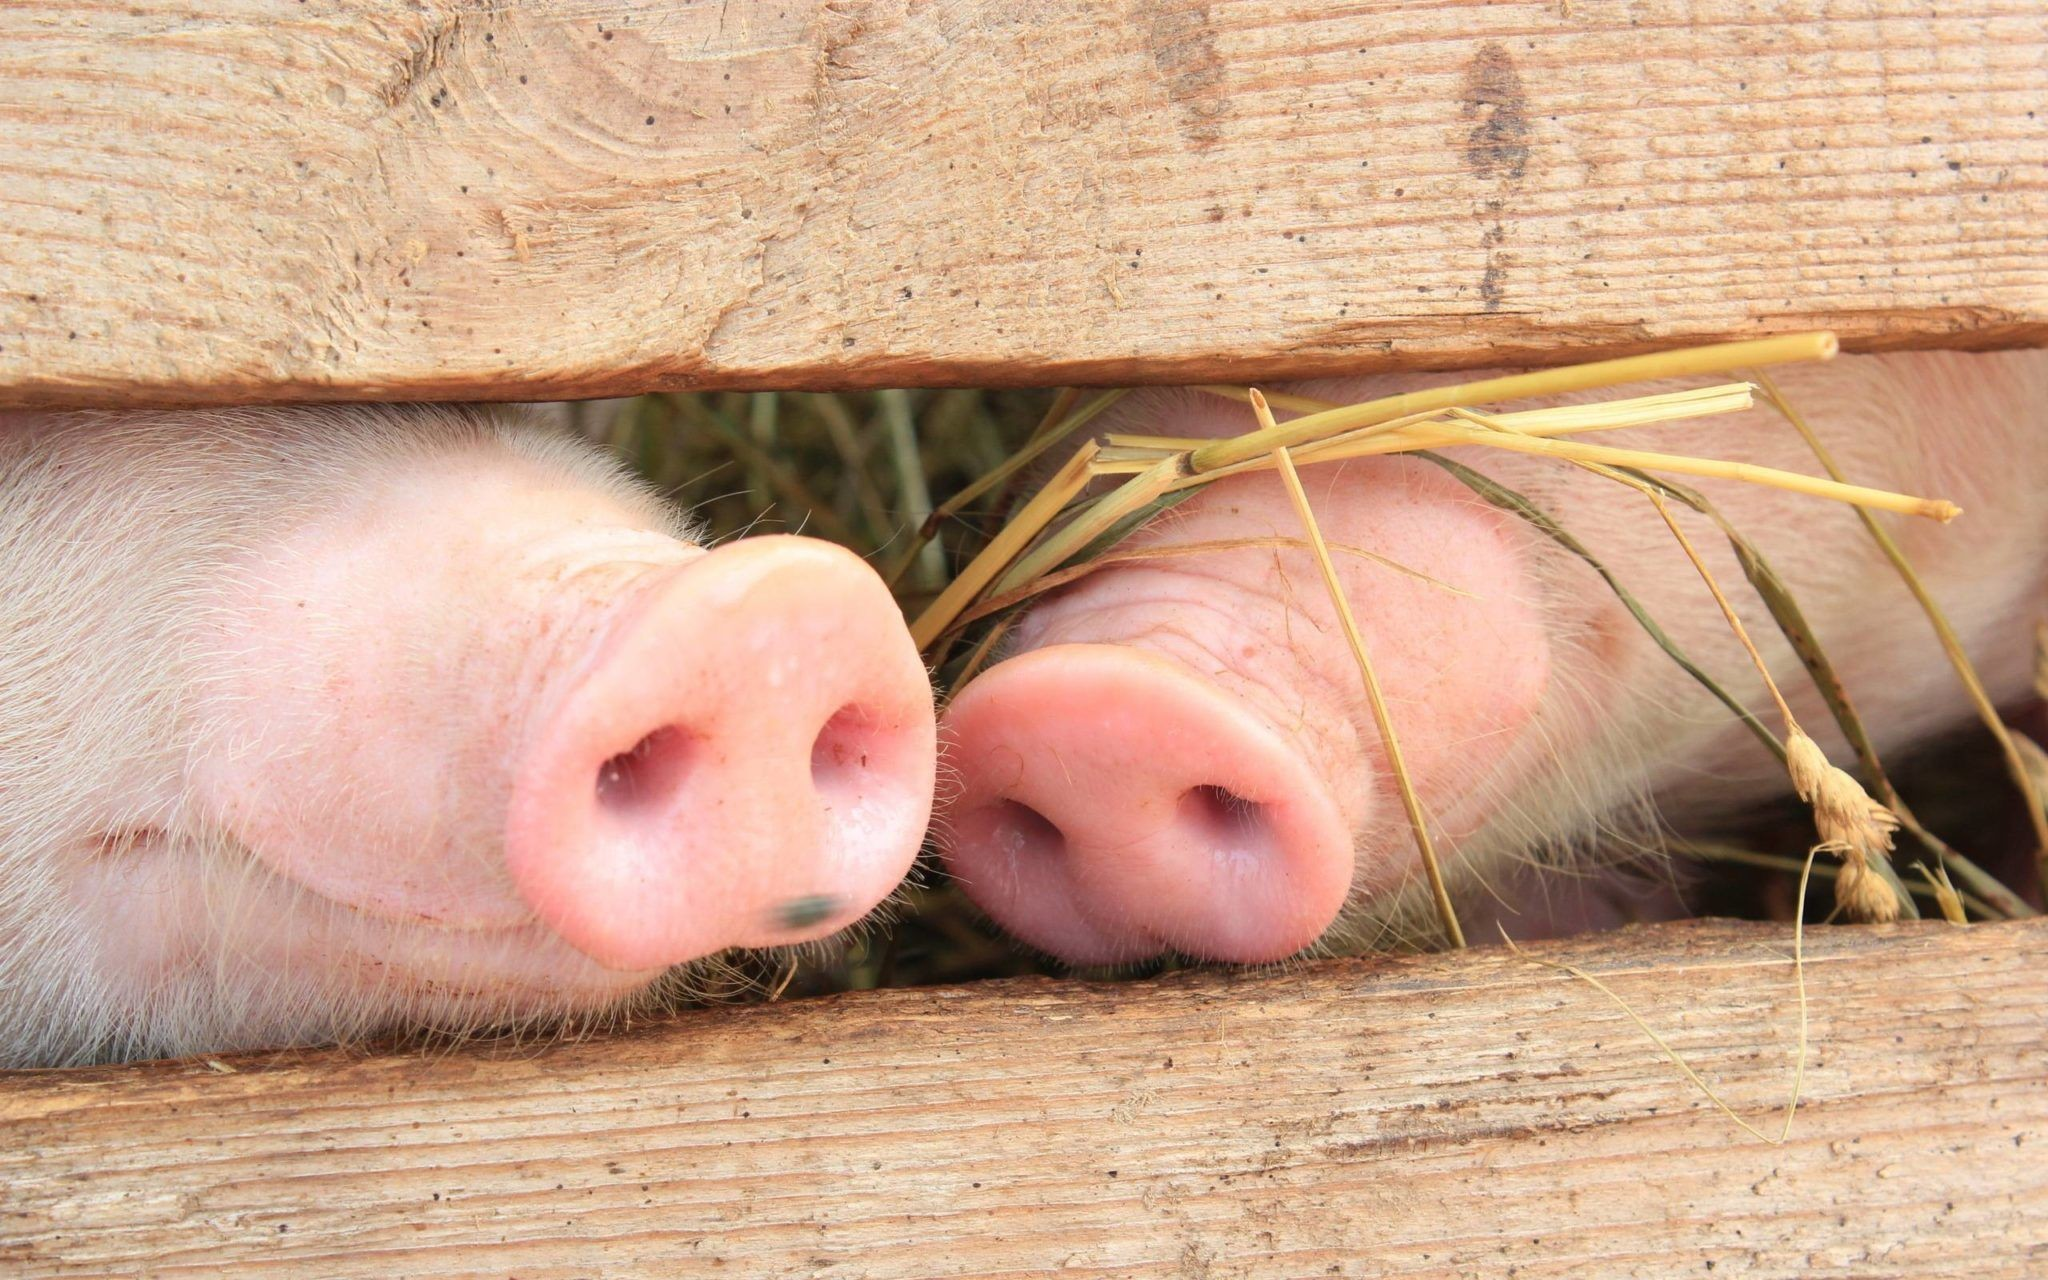 Res: 2048x1280, Pig HD Wallpapers and Backgrounds (4) http://www.urdunewtrend.com/hd- wallpapers/animal/pig/pig-hd-wallpapers-and-backgrounds-4/ Pig 10] 10K 12  rabi ul awal ...